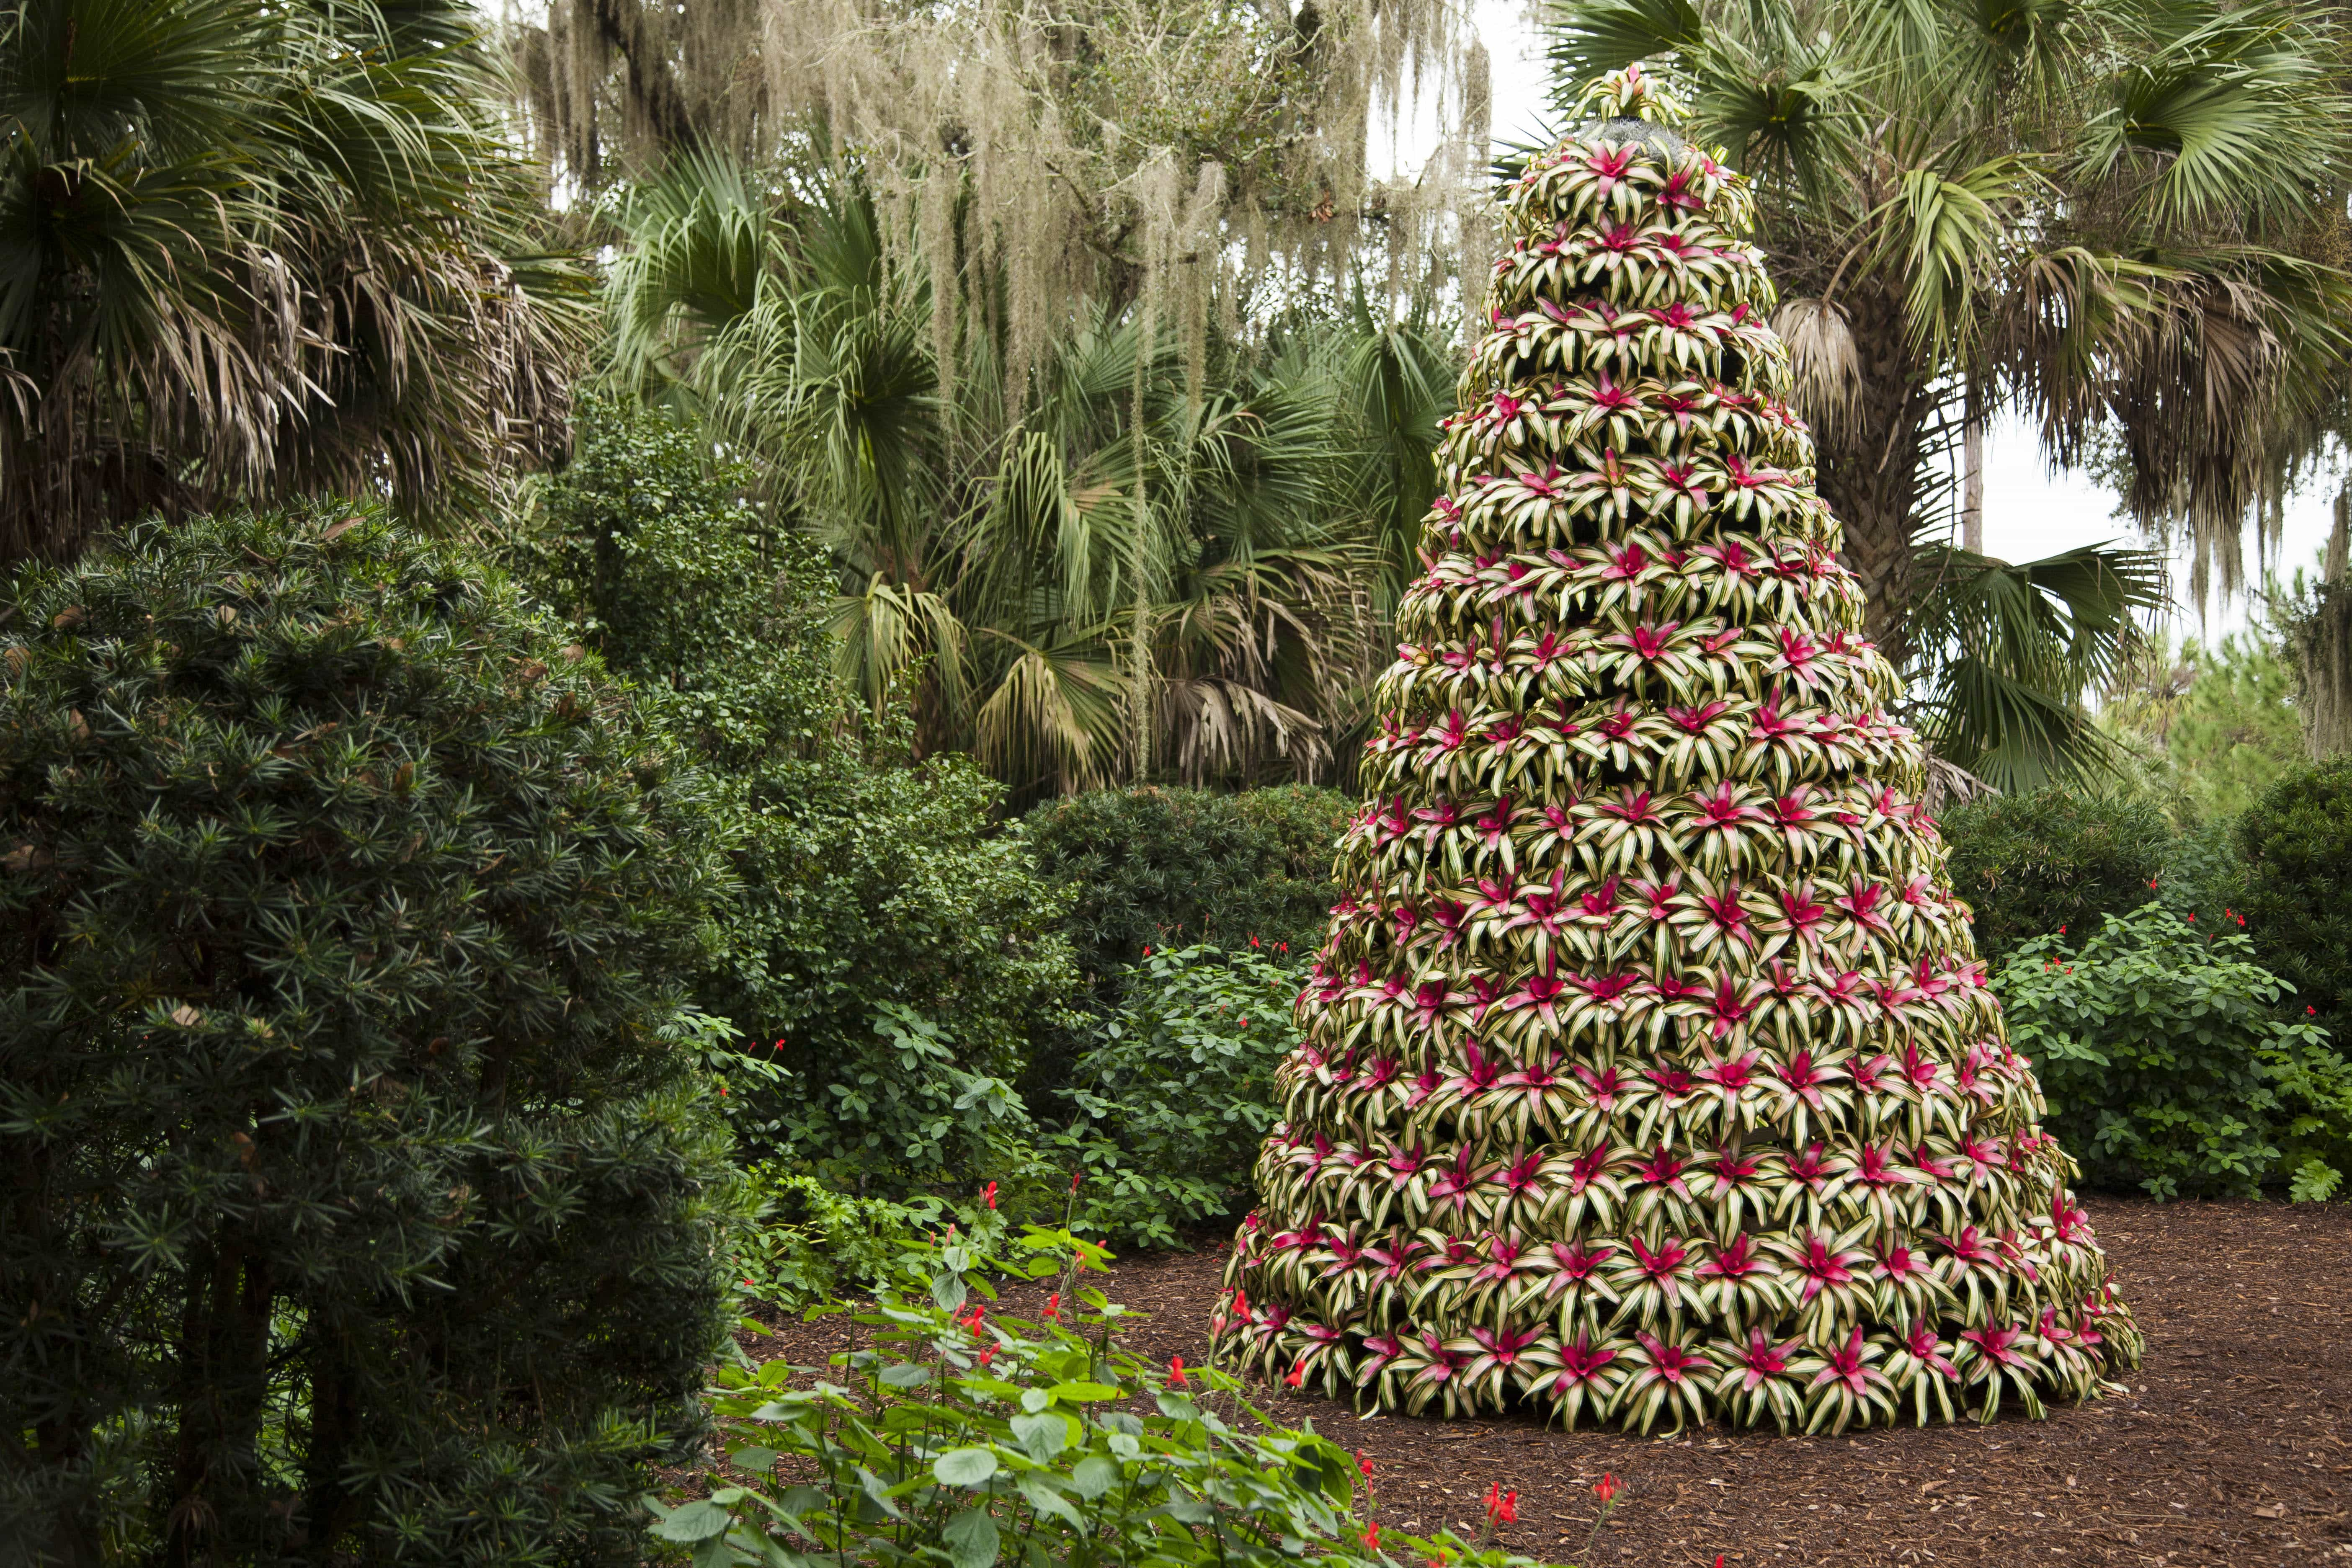 Bok Tower Gardens Christmas events begin November 25